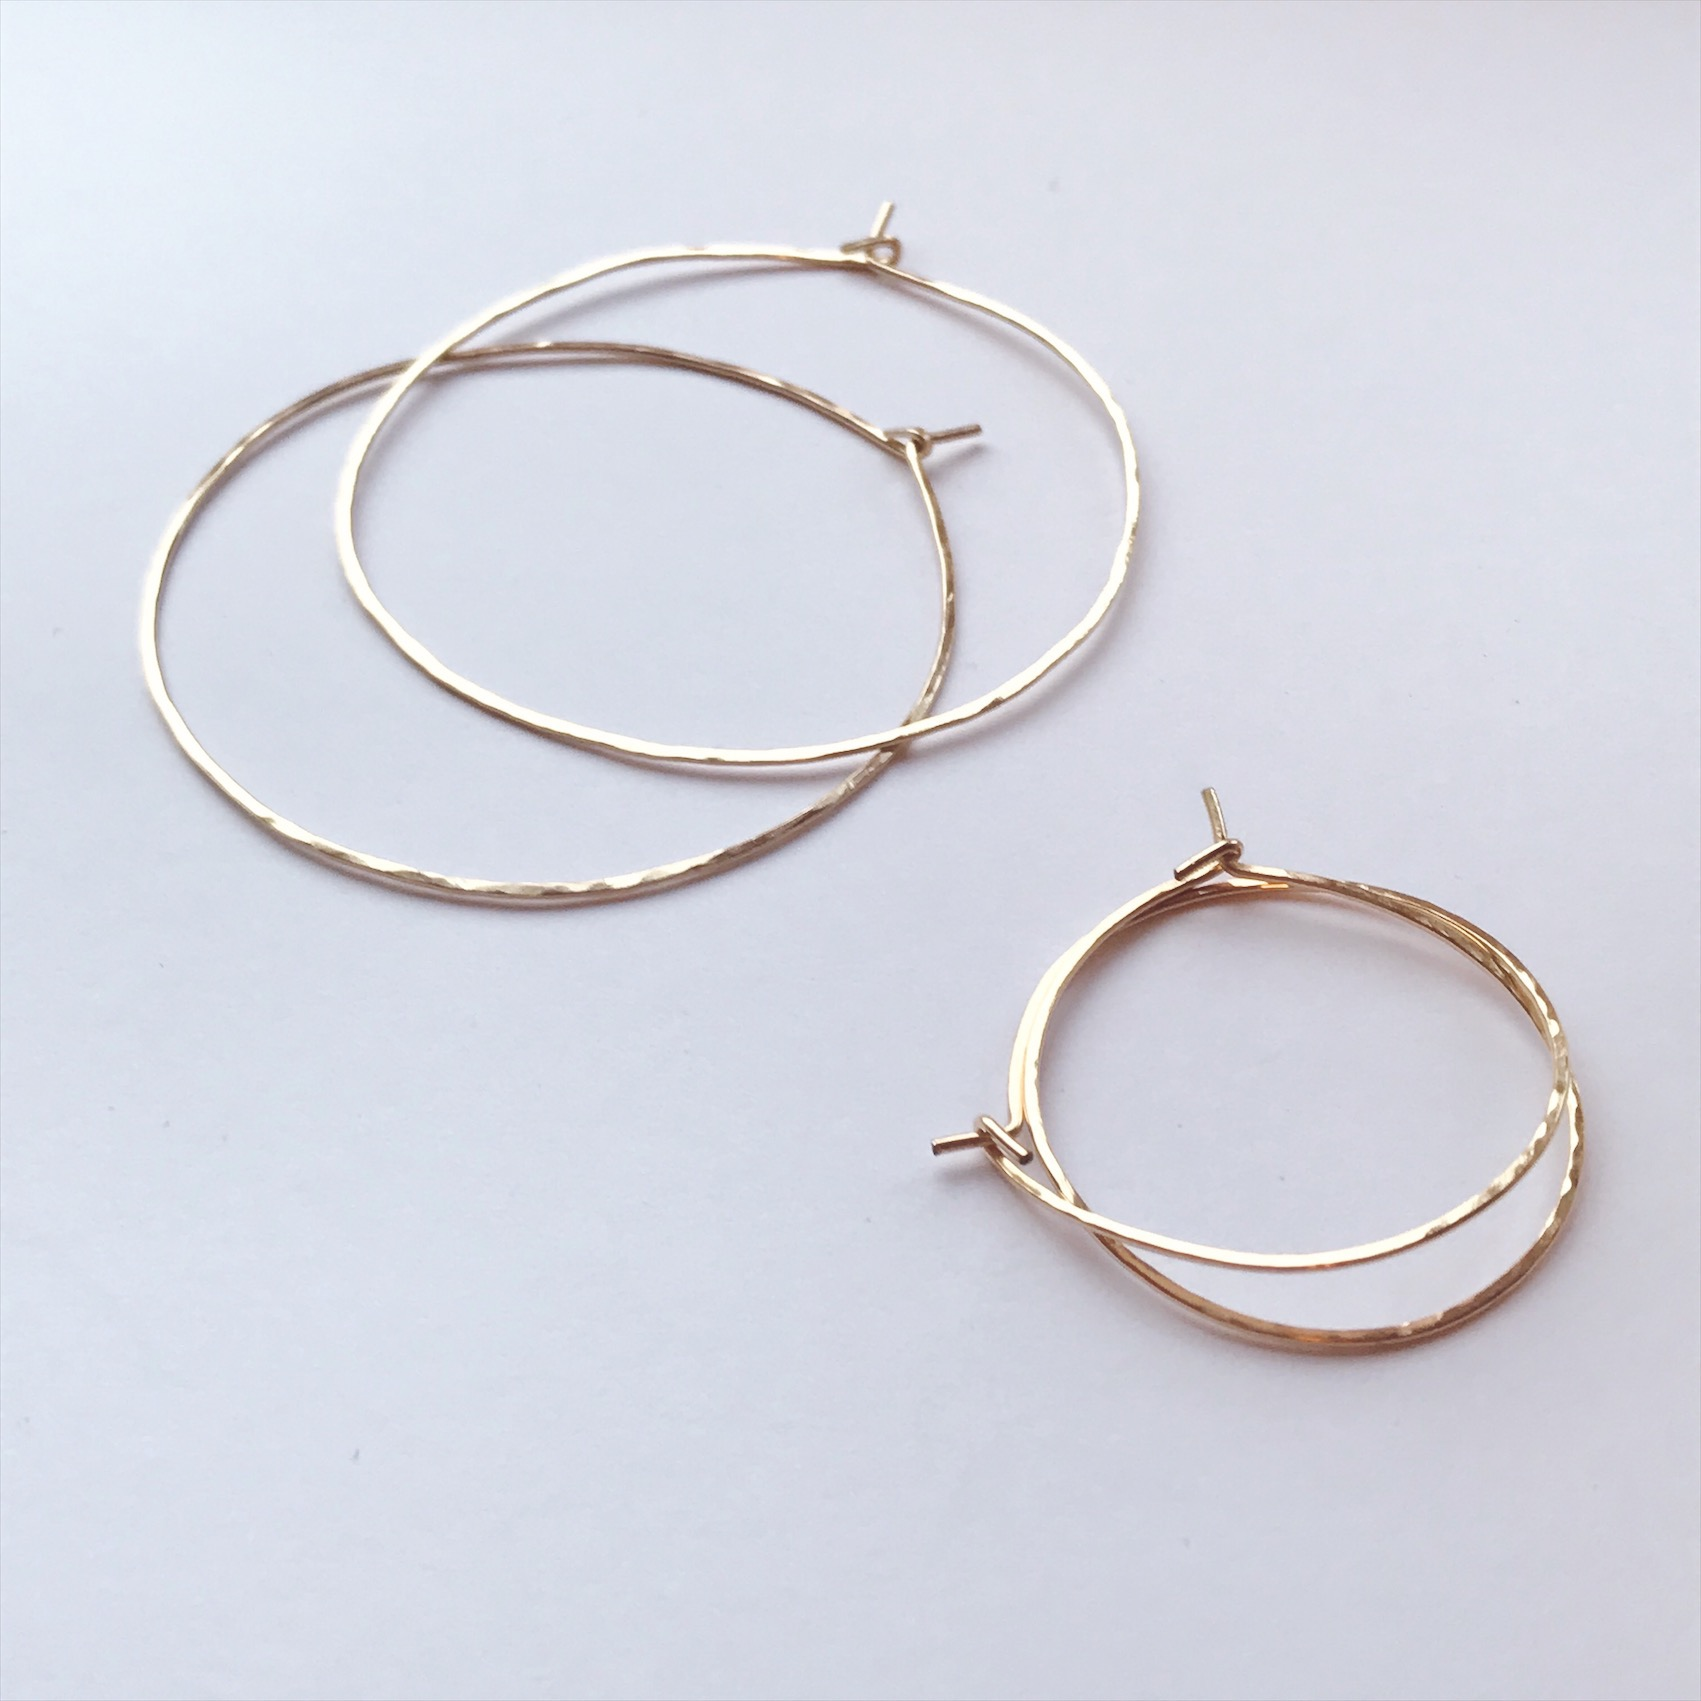 Classic gold hoops with a hammered textured finish created in 14k gold fill   (Top) 2 inch diameter   (bottom) 1 inch diameter